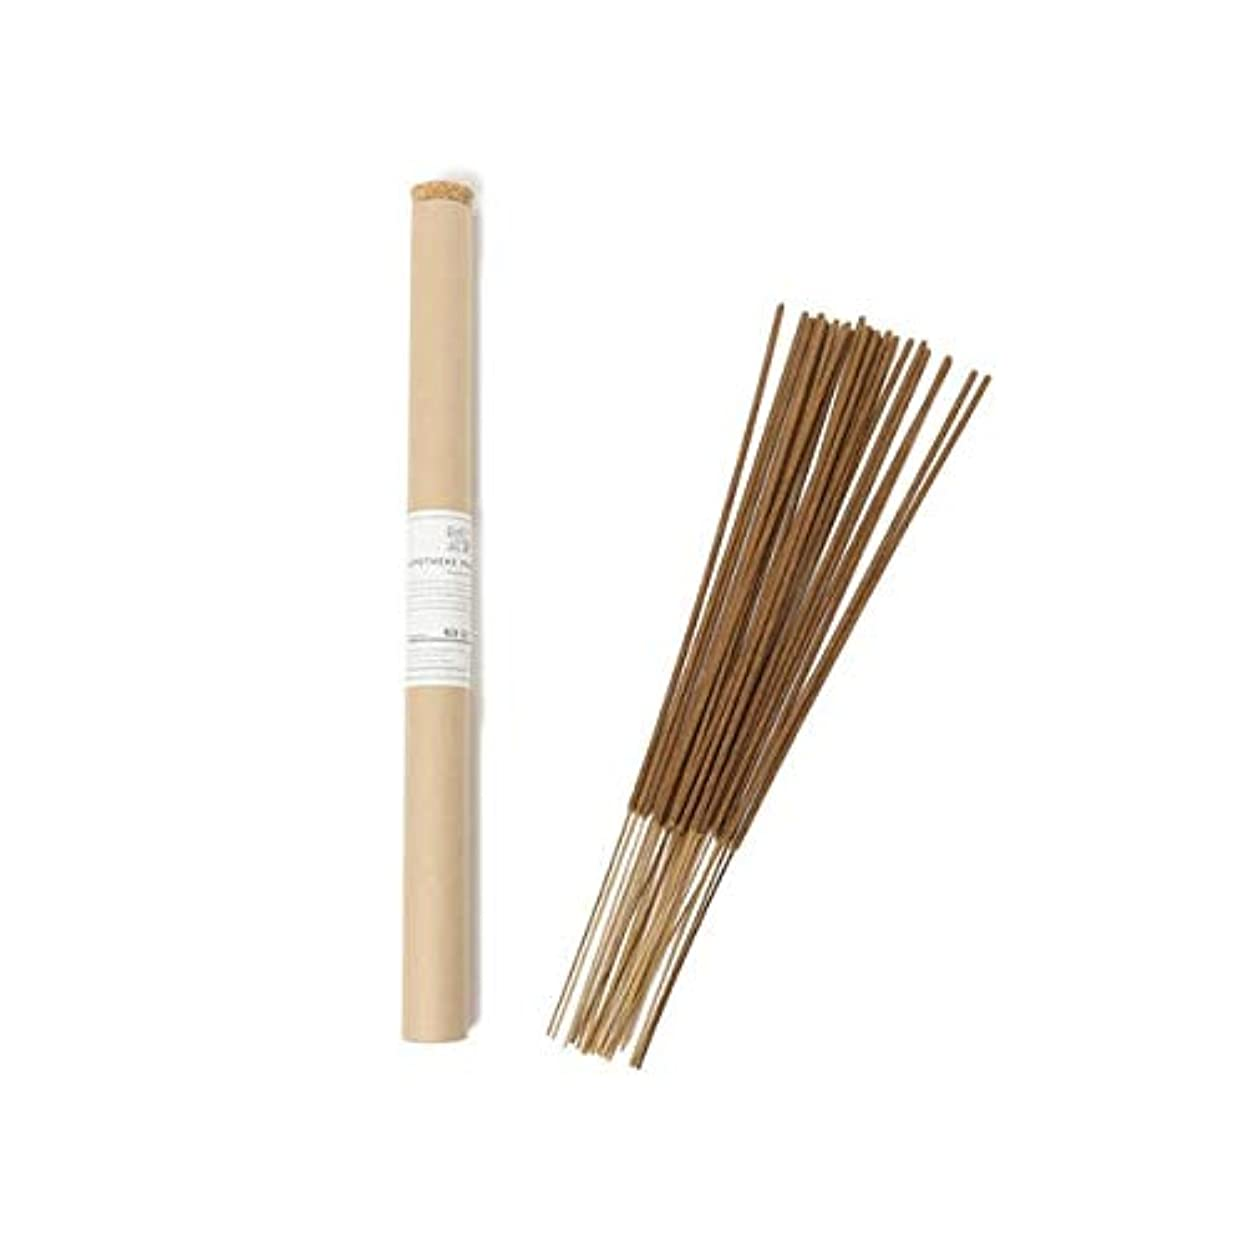 bPrビームス(雑貨)(bprbeams) APOTHEKE FRAGRANCE/INCENSE STICKS (お香)